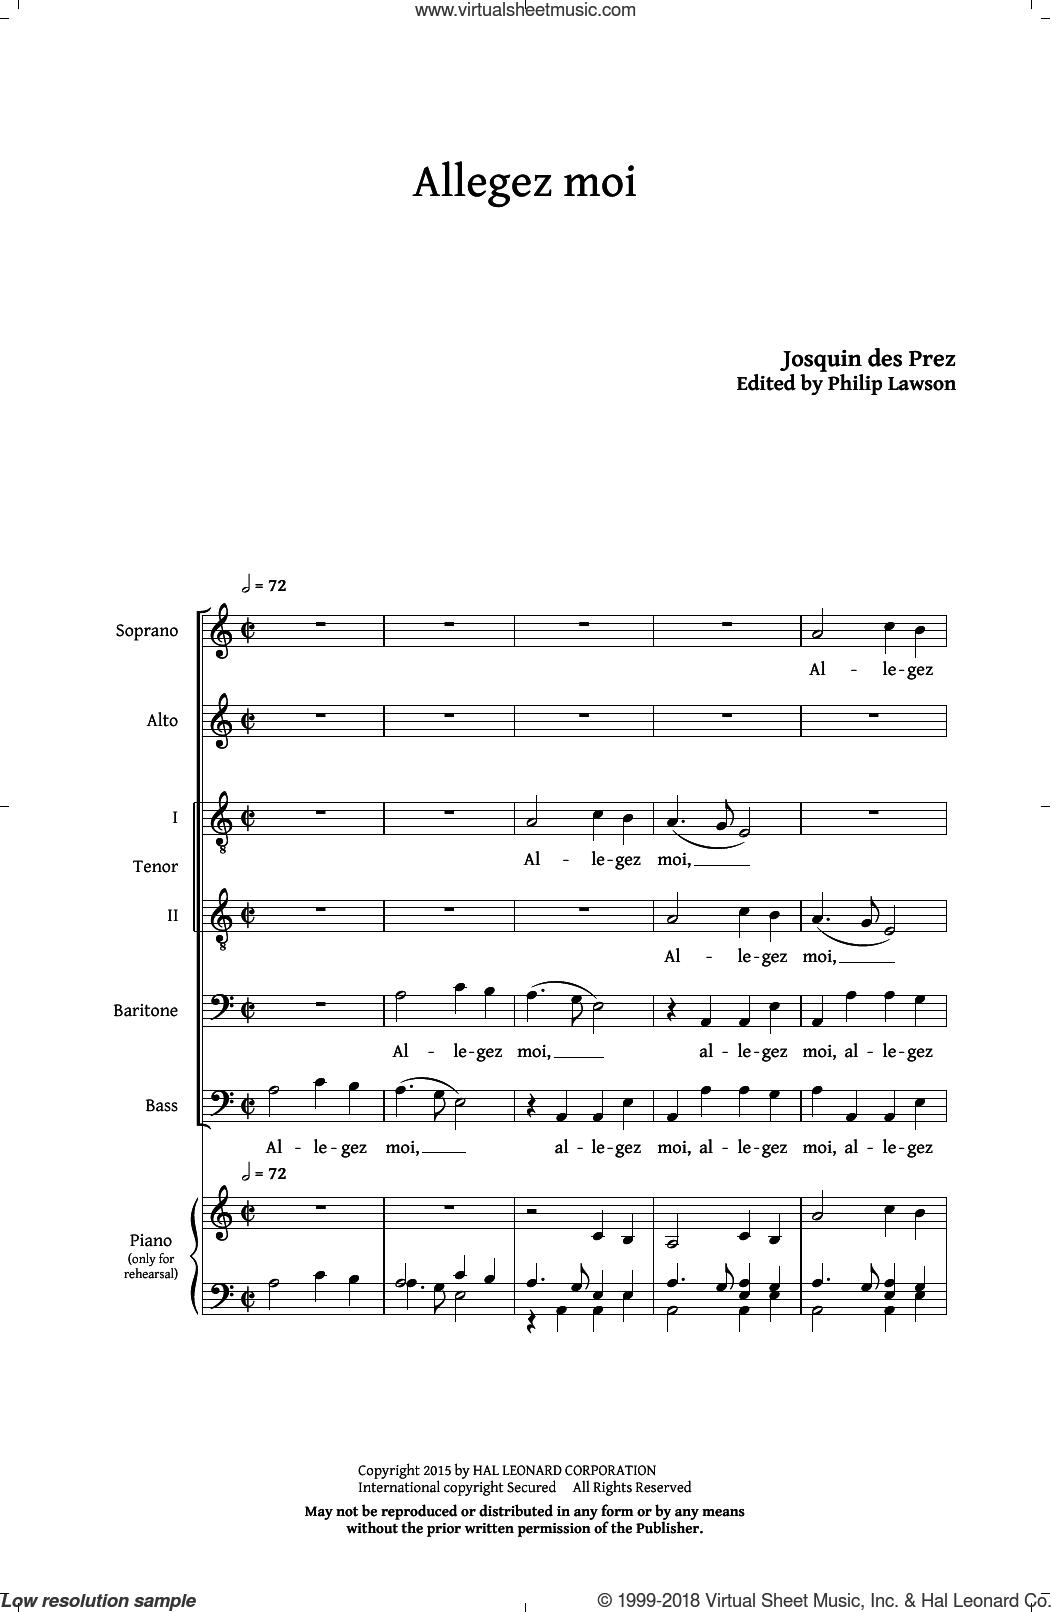 Allegez Moi sheet music for choir and piano (SATB) by Philip Lawson, Josquin des Prez and Josquin Des Pres. Score Image Preview.